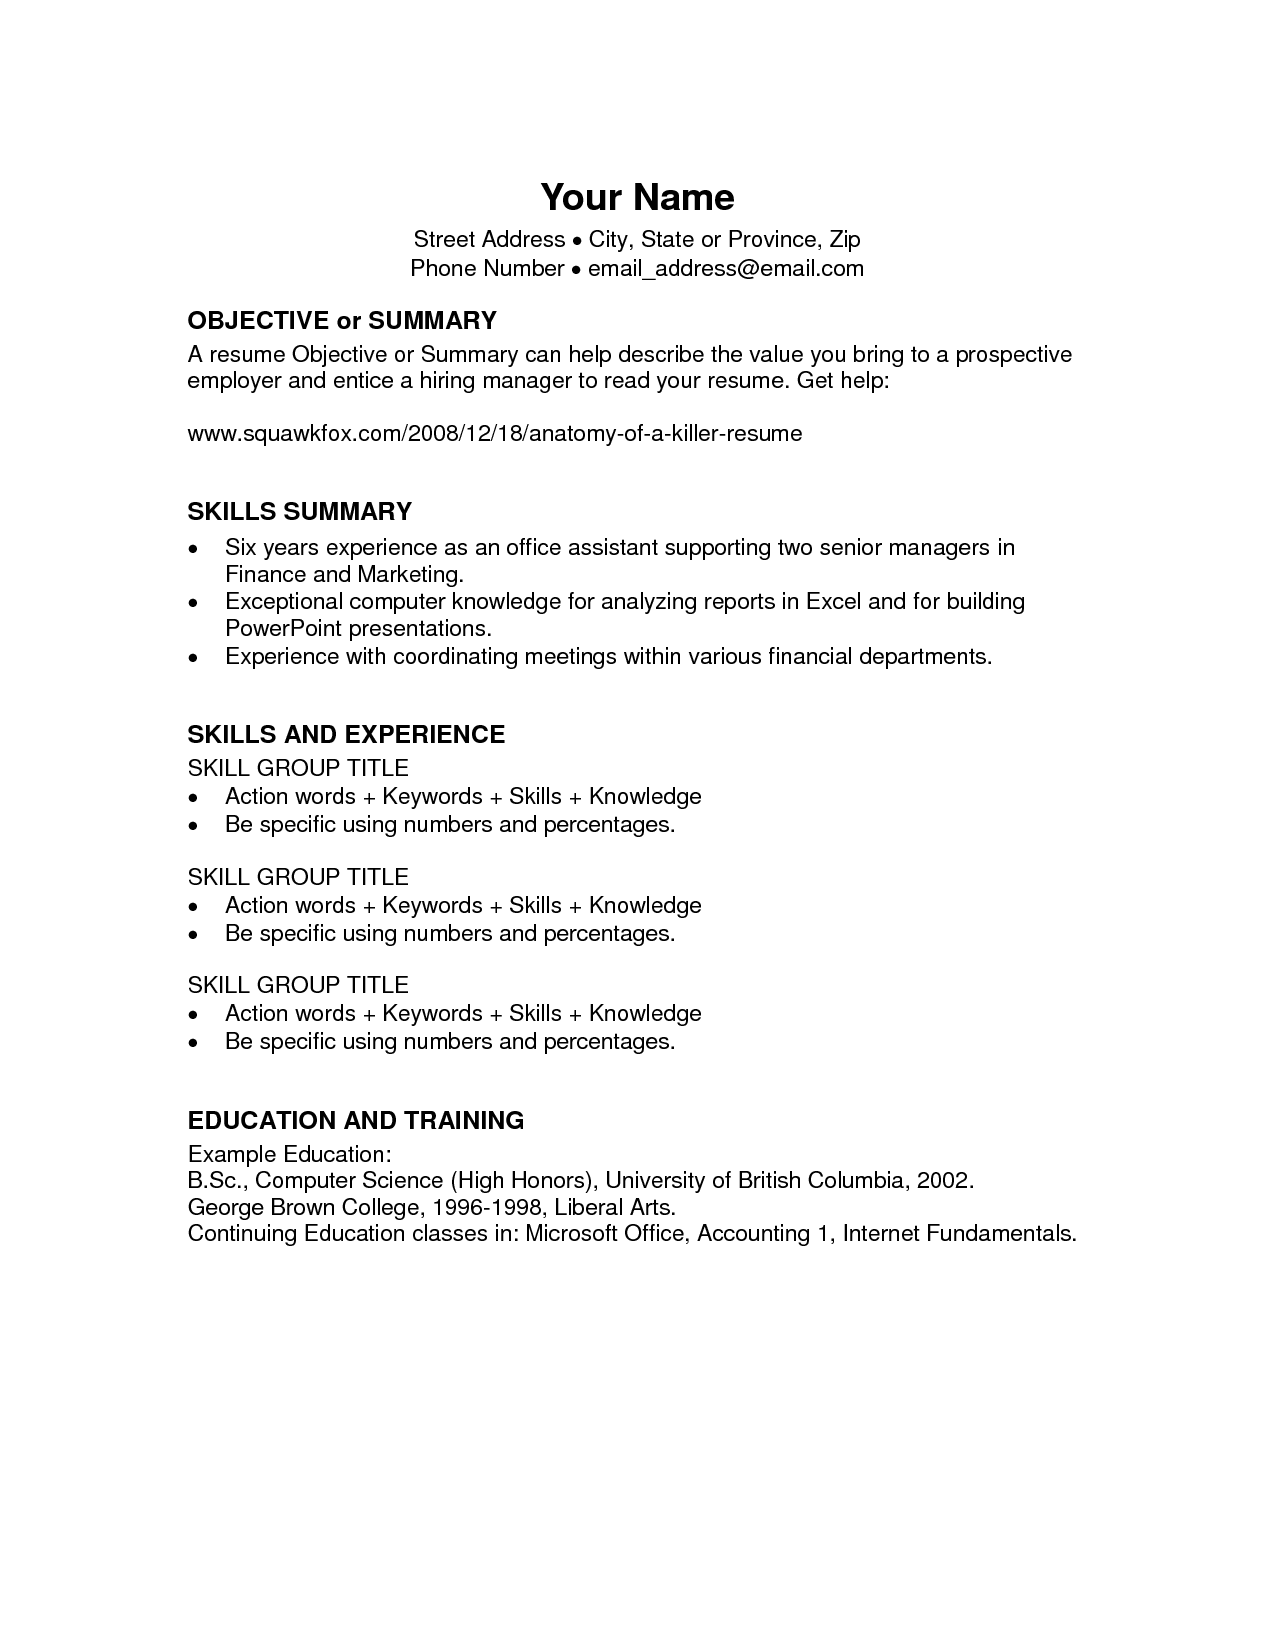 Resume Template For Microsoft Word 2010 Creative Designs Killer Resume How Write Fresh Idea Tips For The